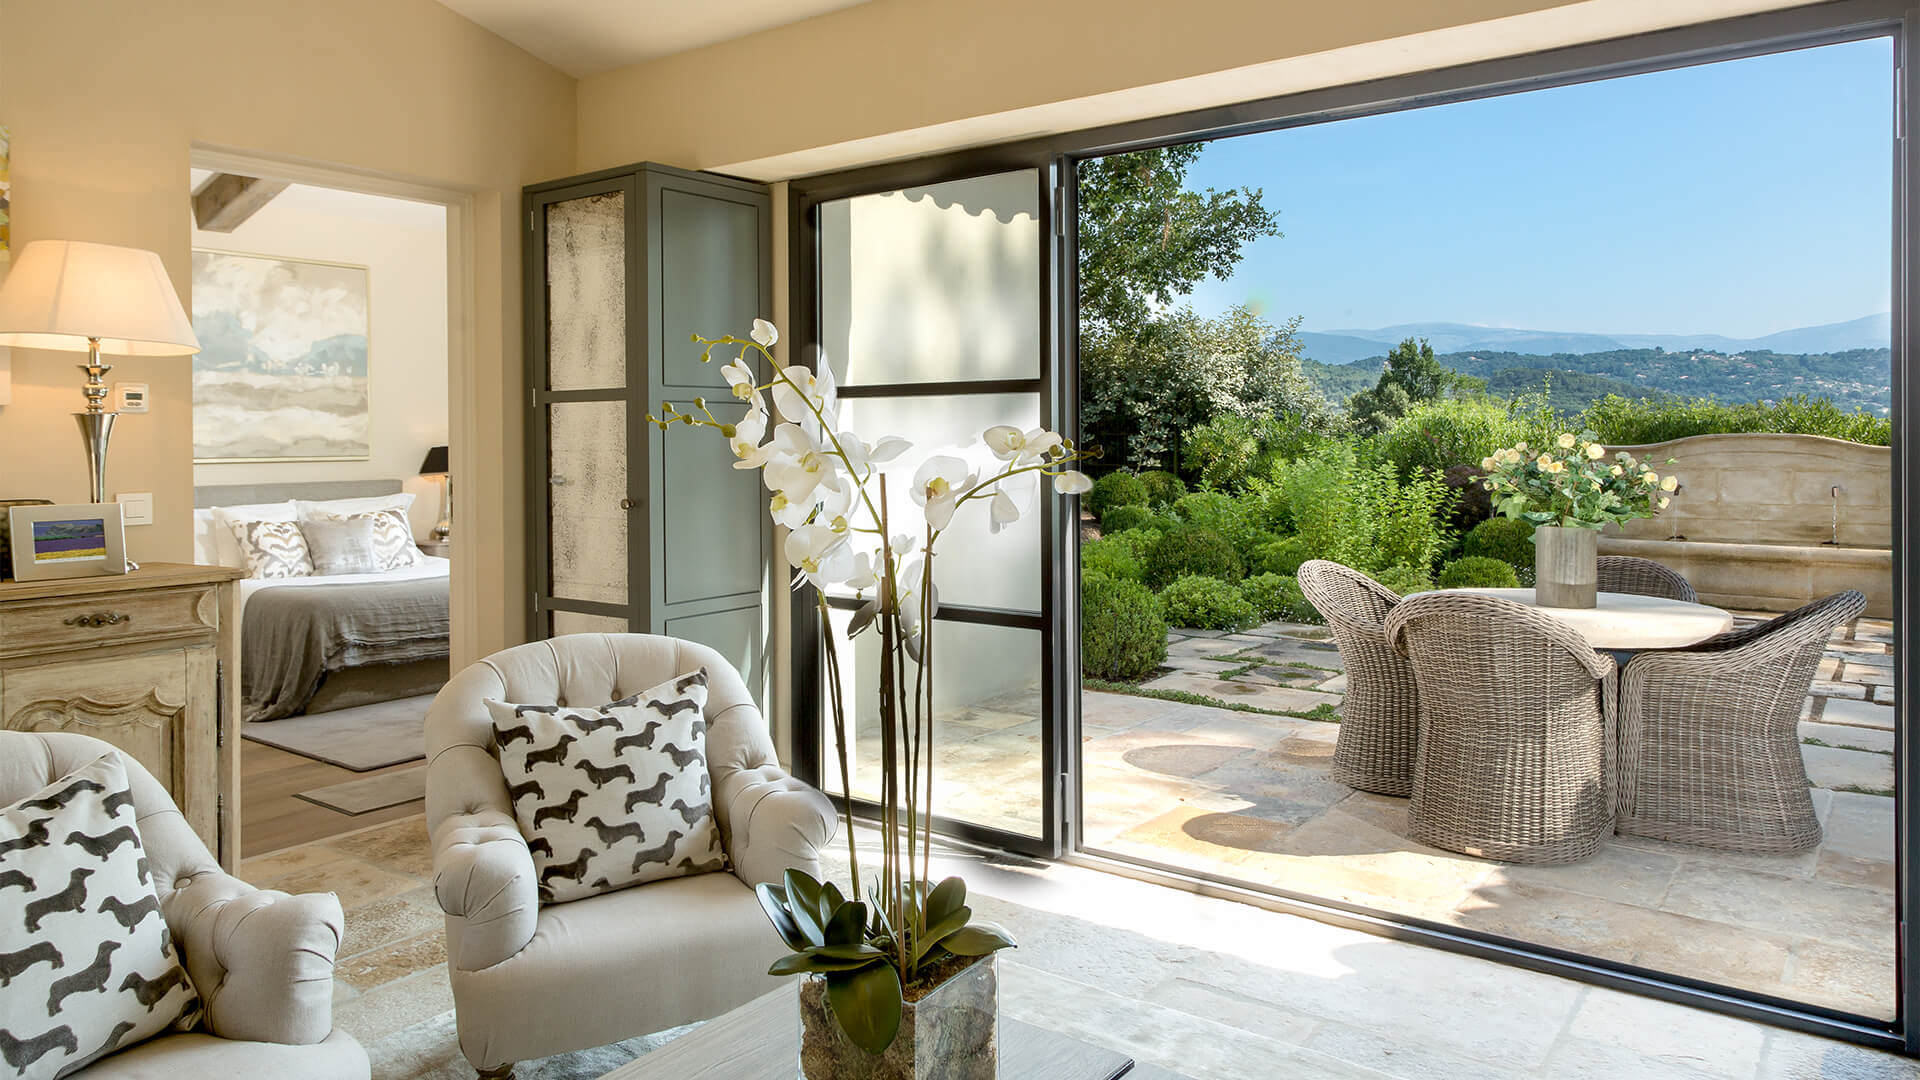 Villa Fayence living room and patio with view